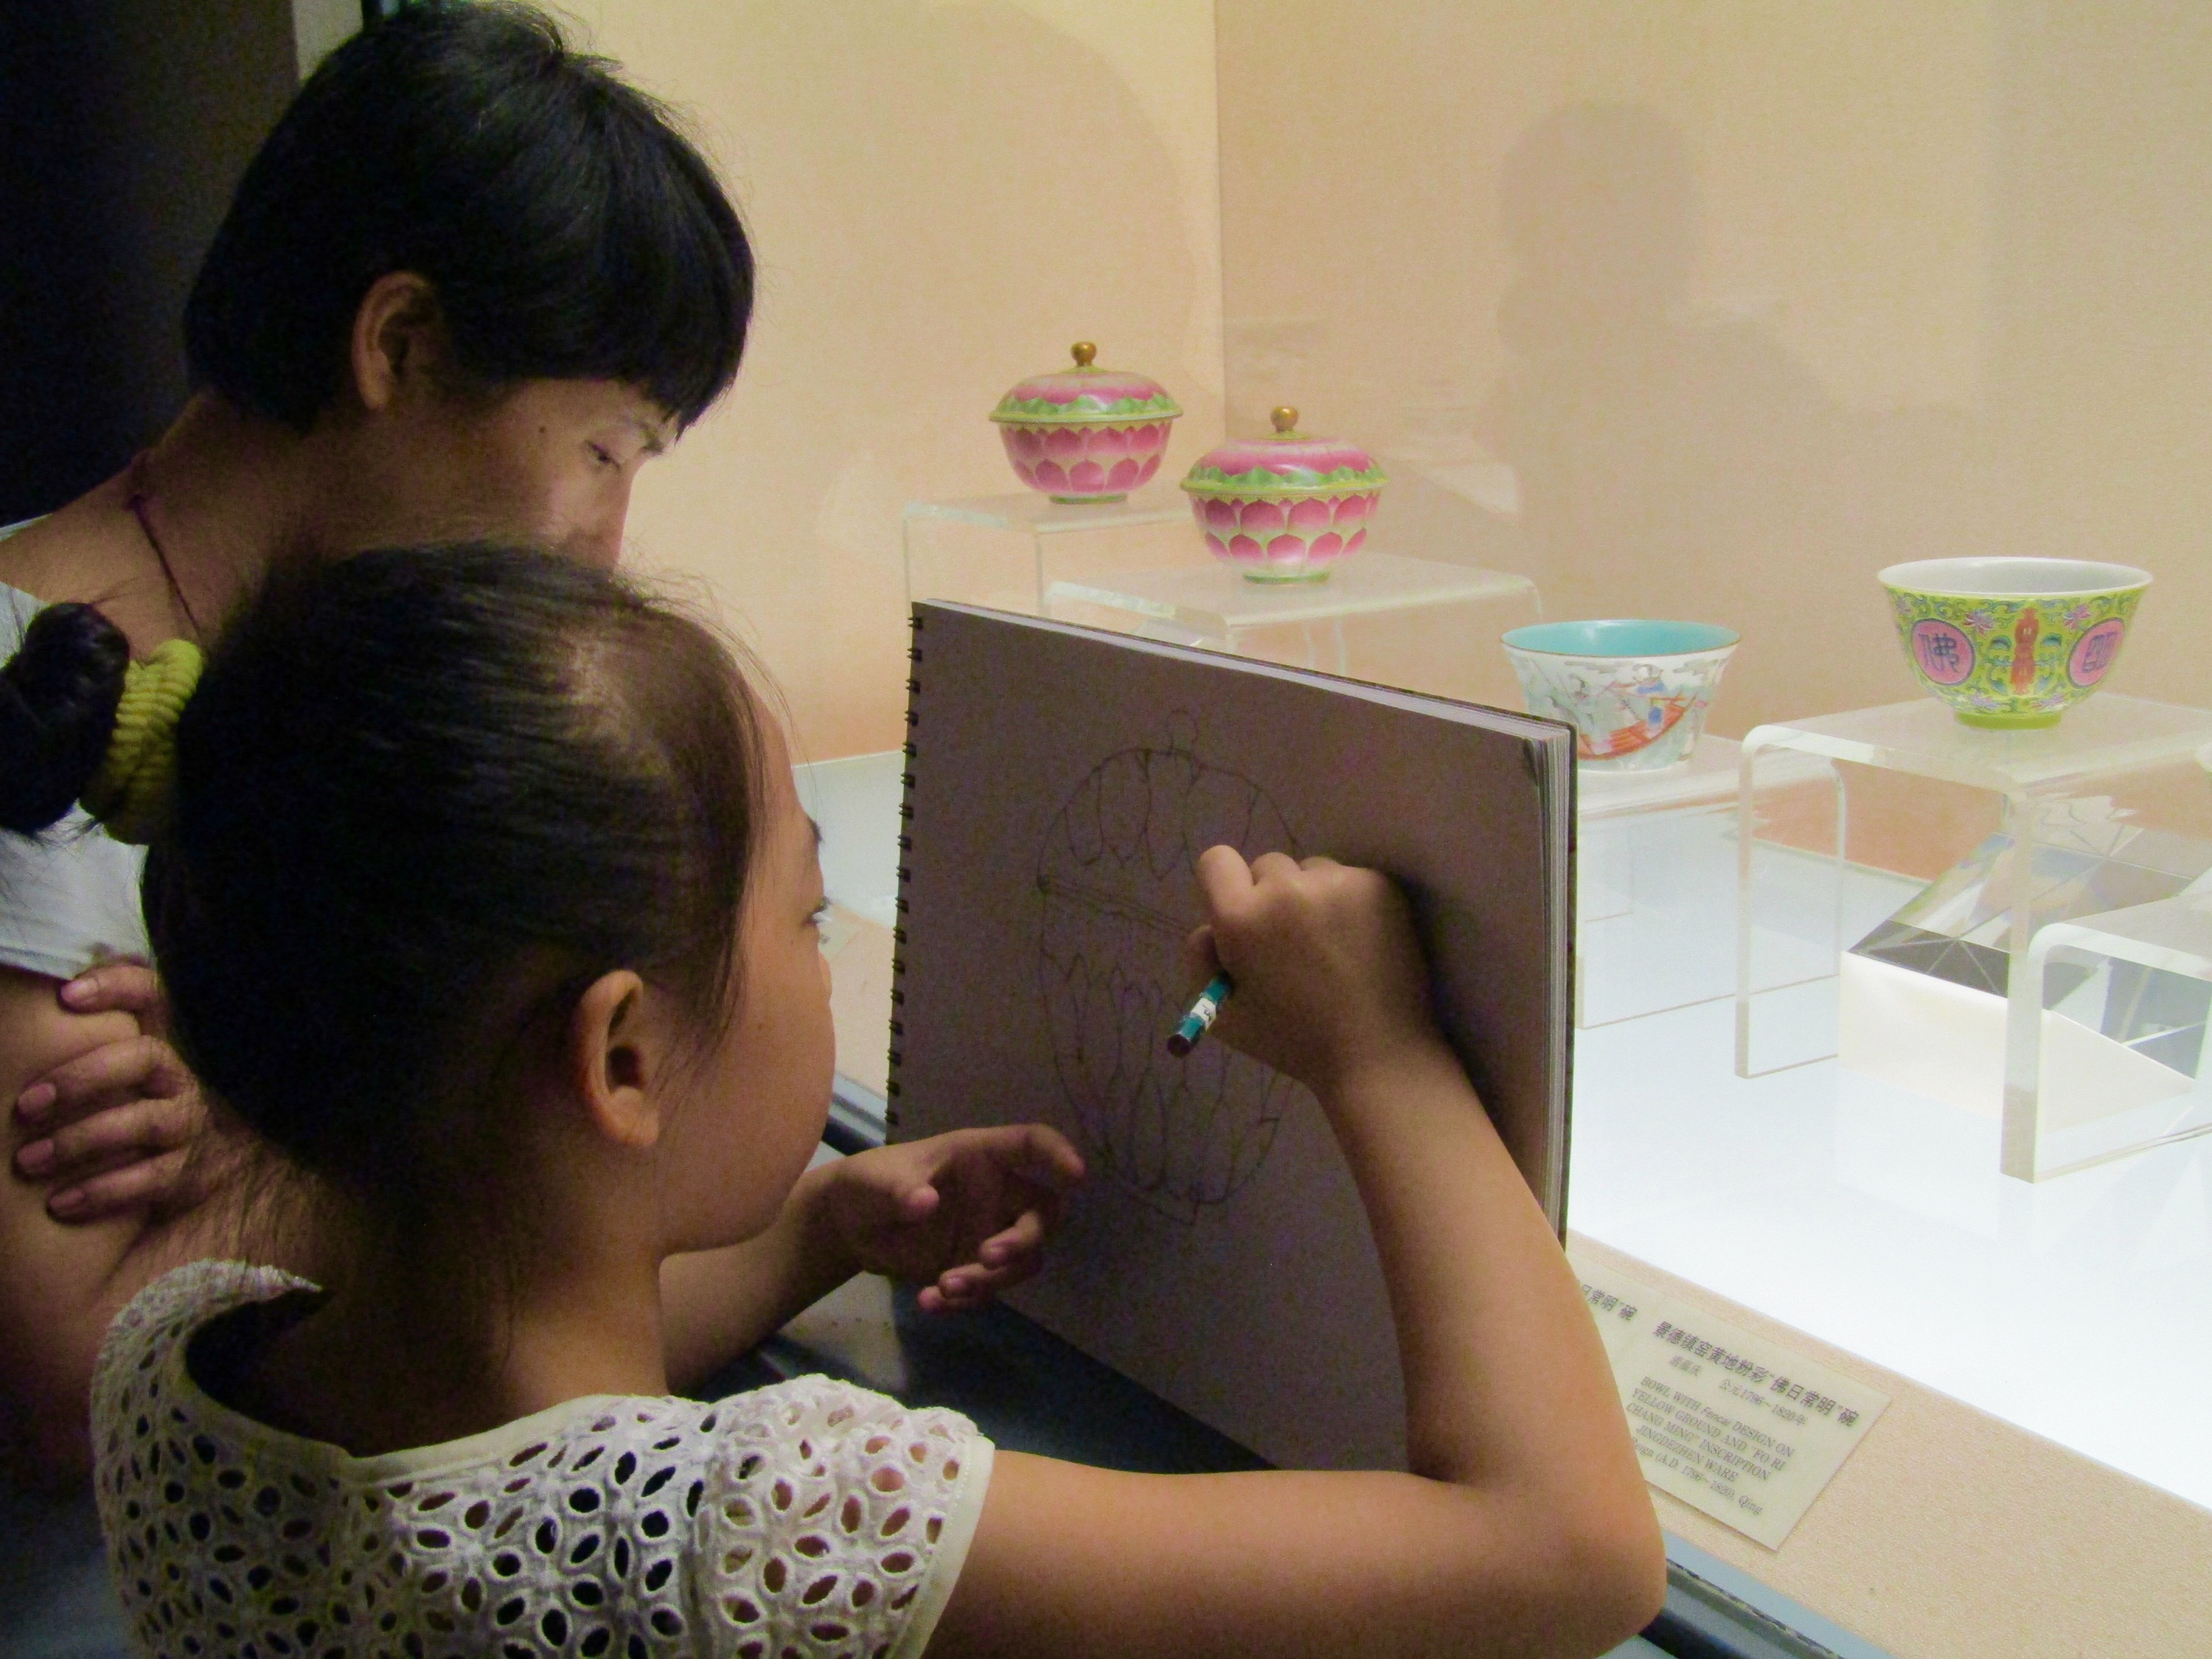 At Shanghai Museum, a young artist sketches on of the Qing-era bowls on display.